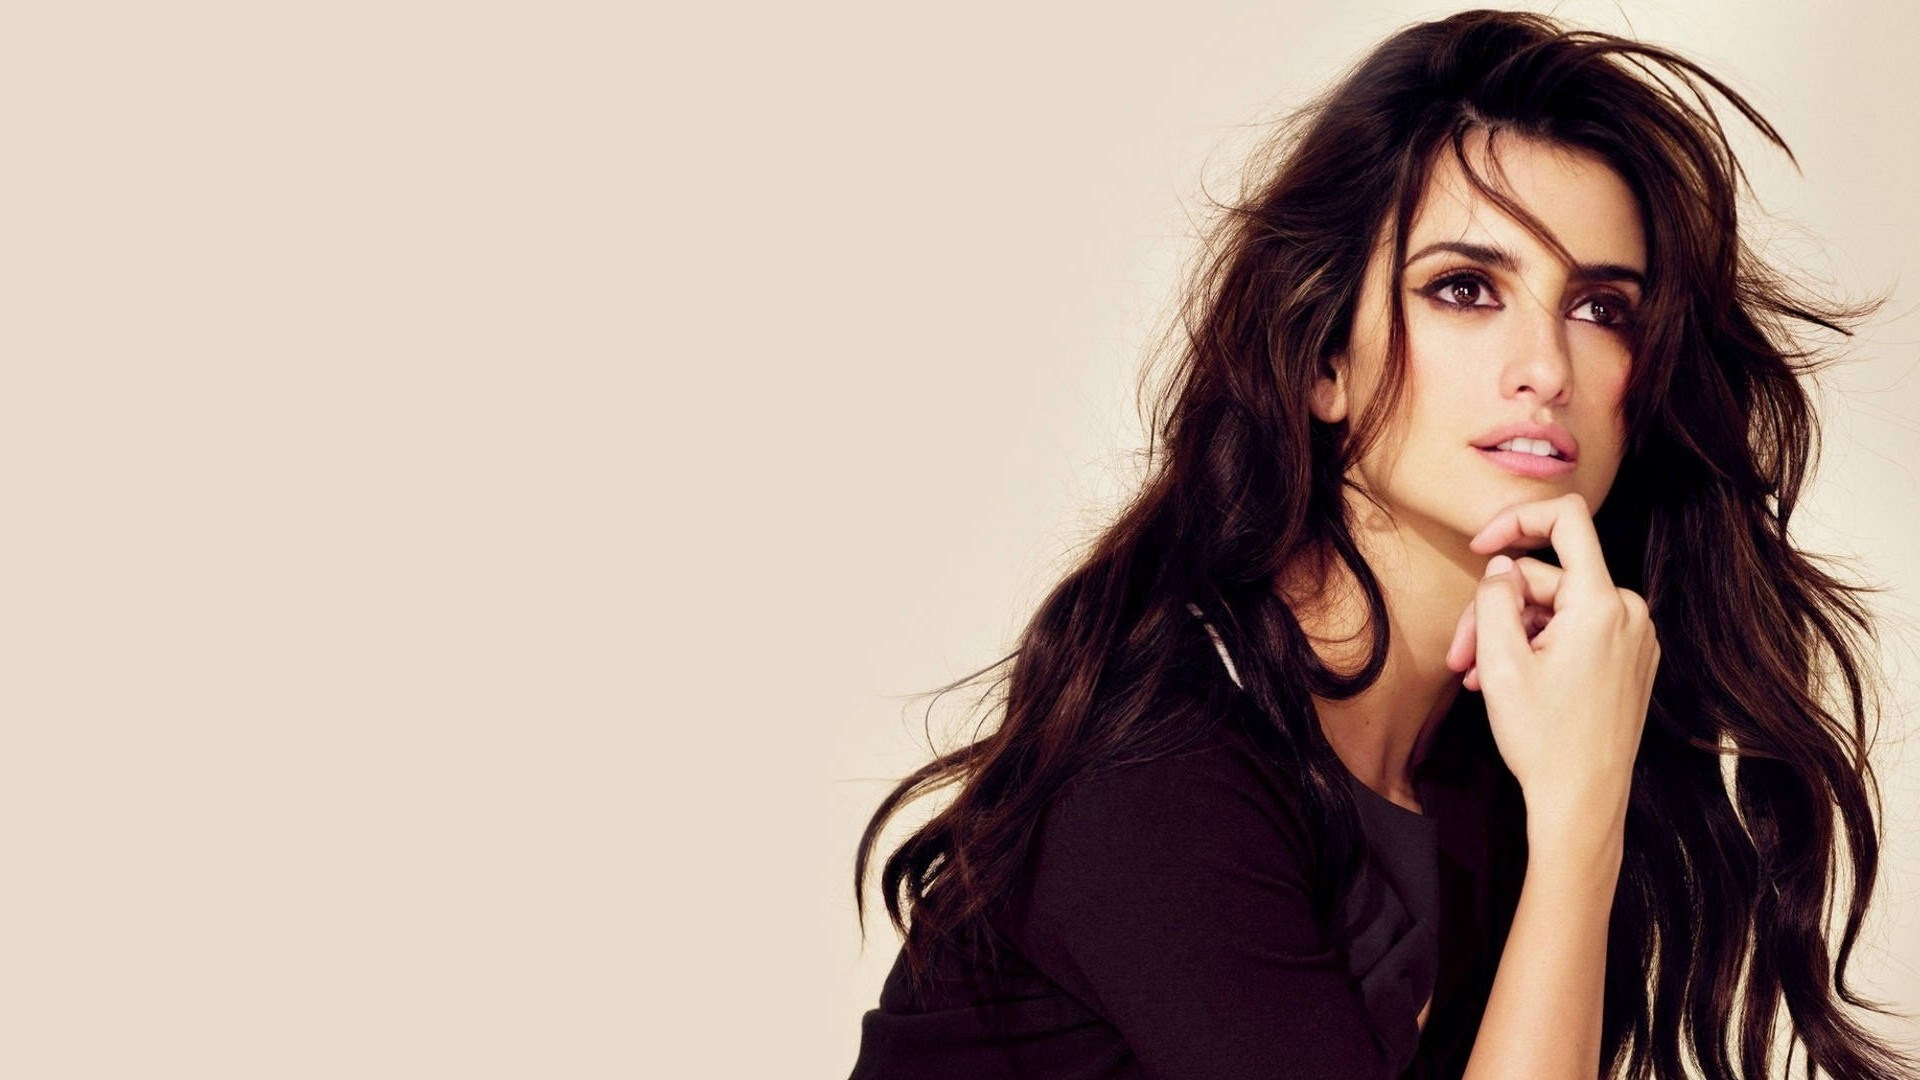 penelope-cruz-hd-desktop-wallpaper